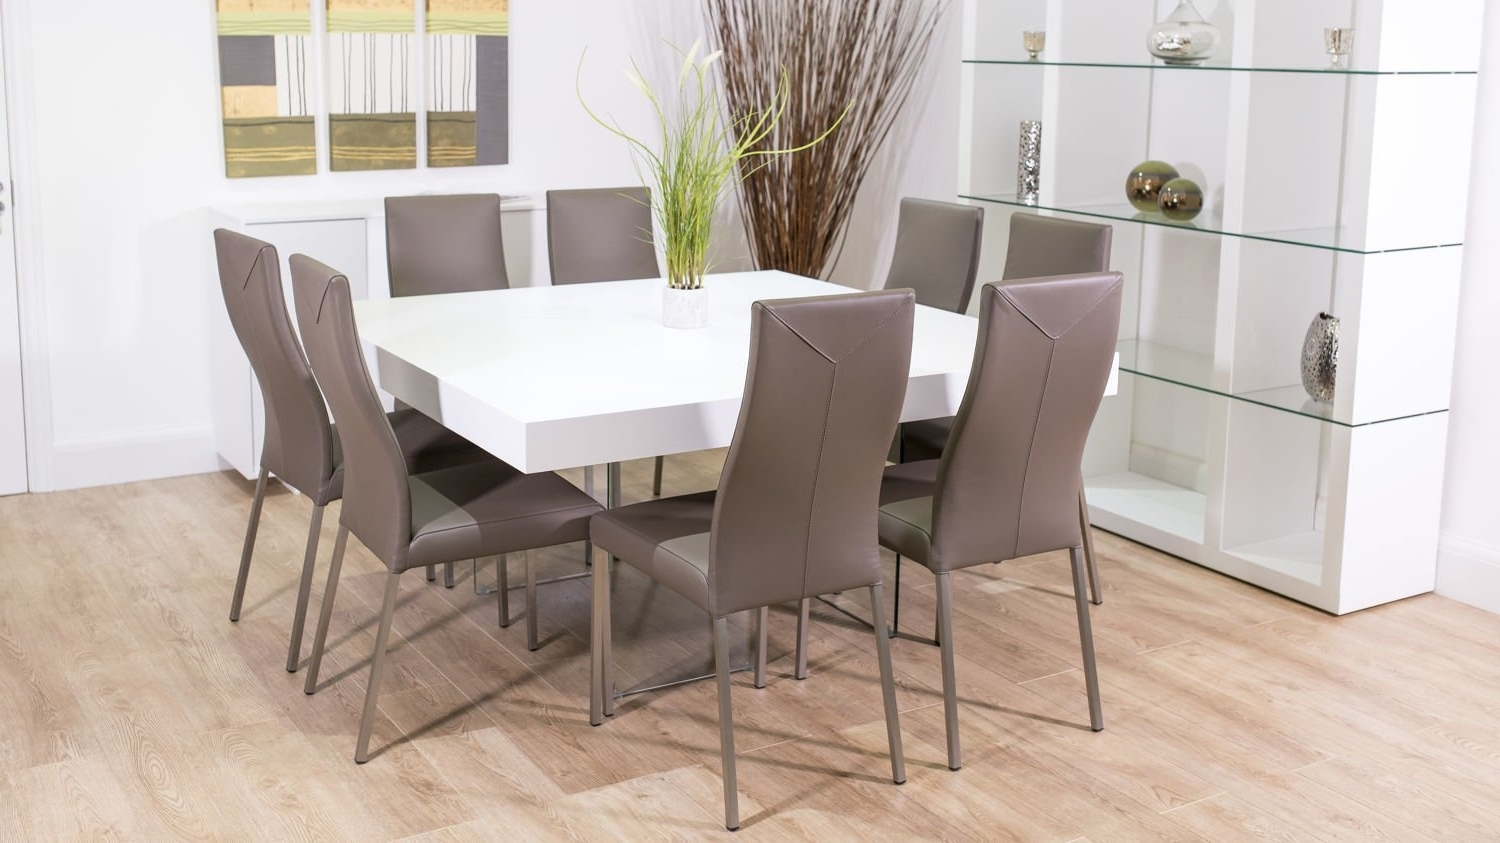 Cvivre Throughout Most Recent 8 Seat Dining Tables (Gallery 1 of 25)